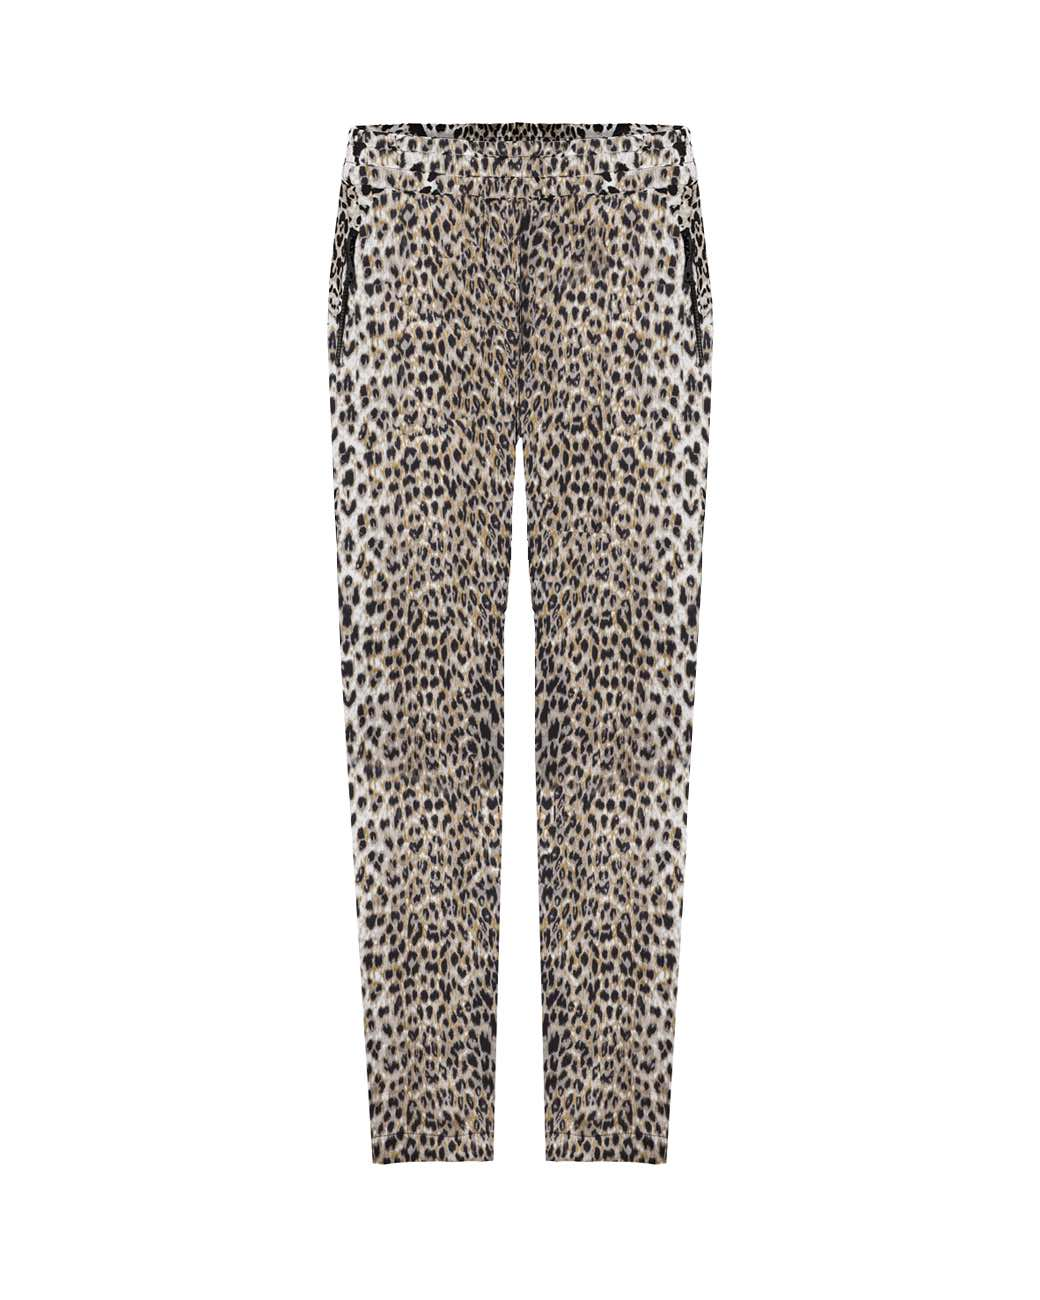 Mela Purdie - Soft Zip Pant in Snow Leopard